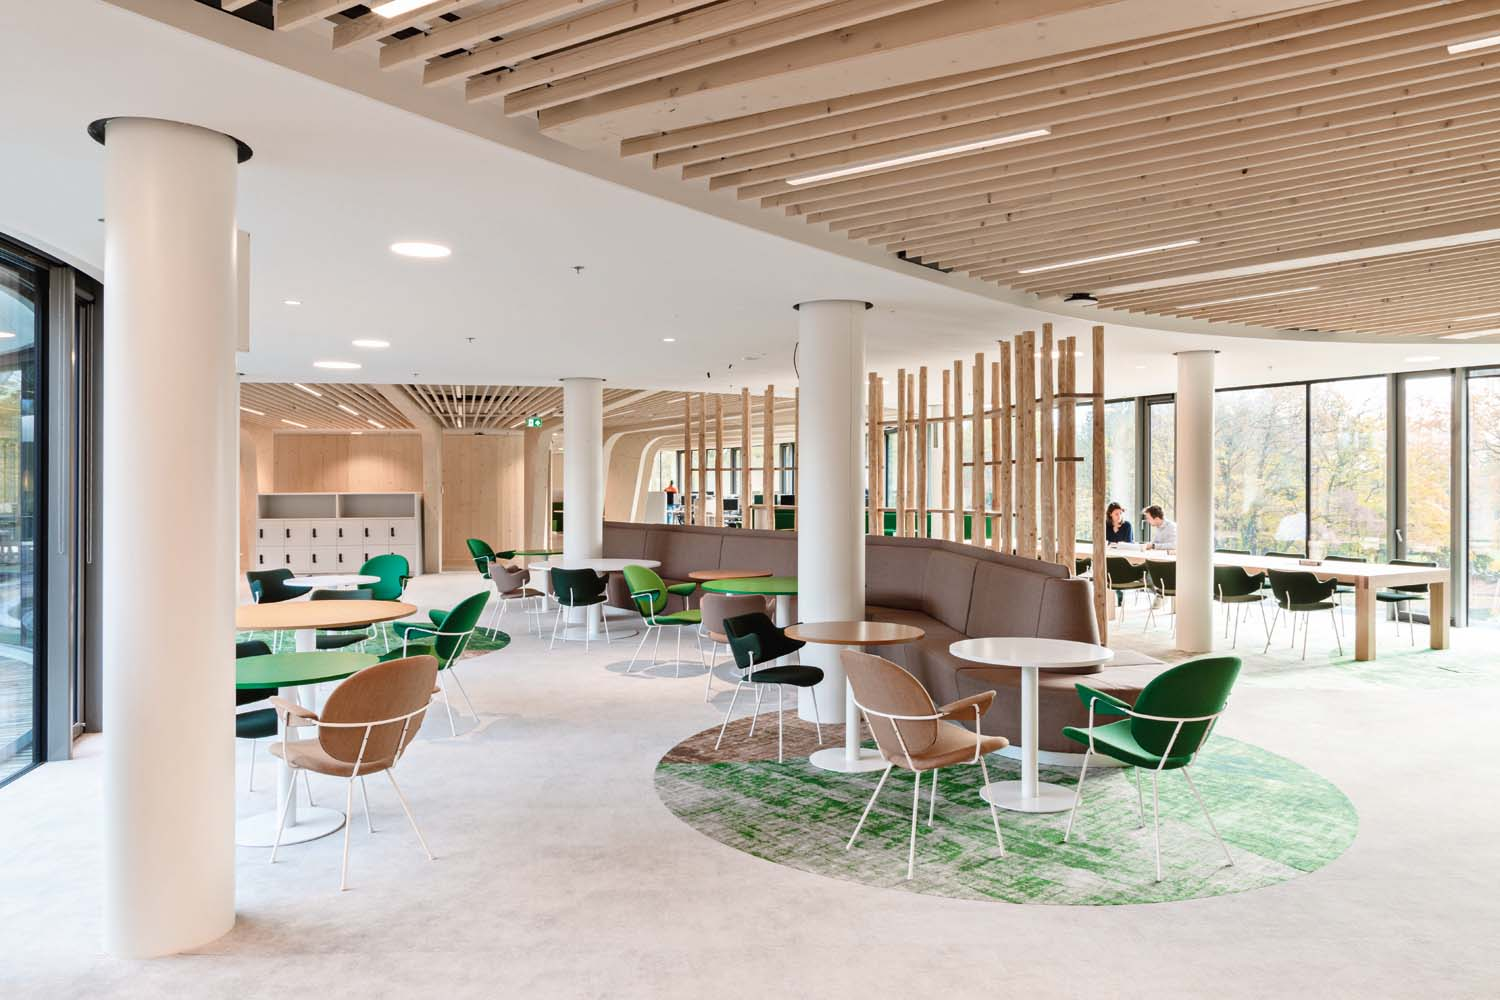 © Gispen, courtesy Ex Interiors The decision to adopt organic forms, sophisticated materials and natural colors infuses the environment with a sense of calm and reinforces the building's connection with its surroundings.